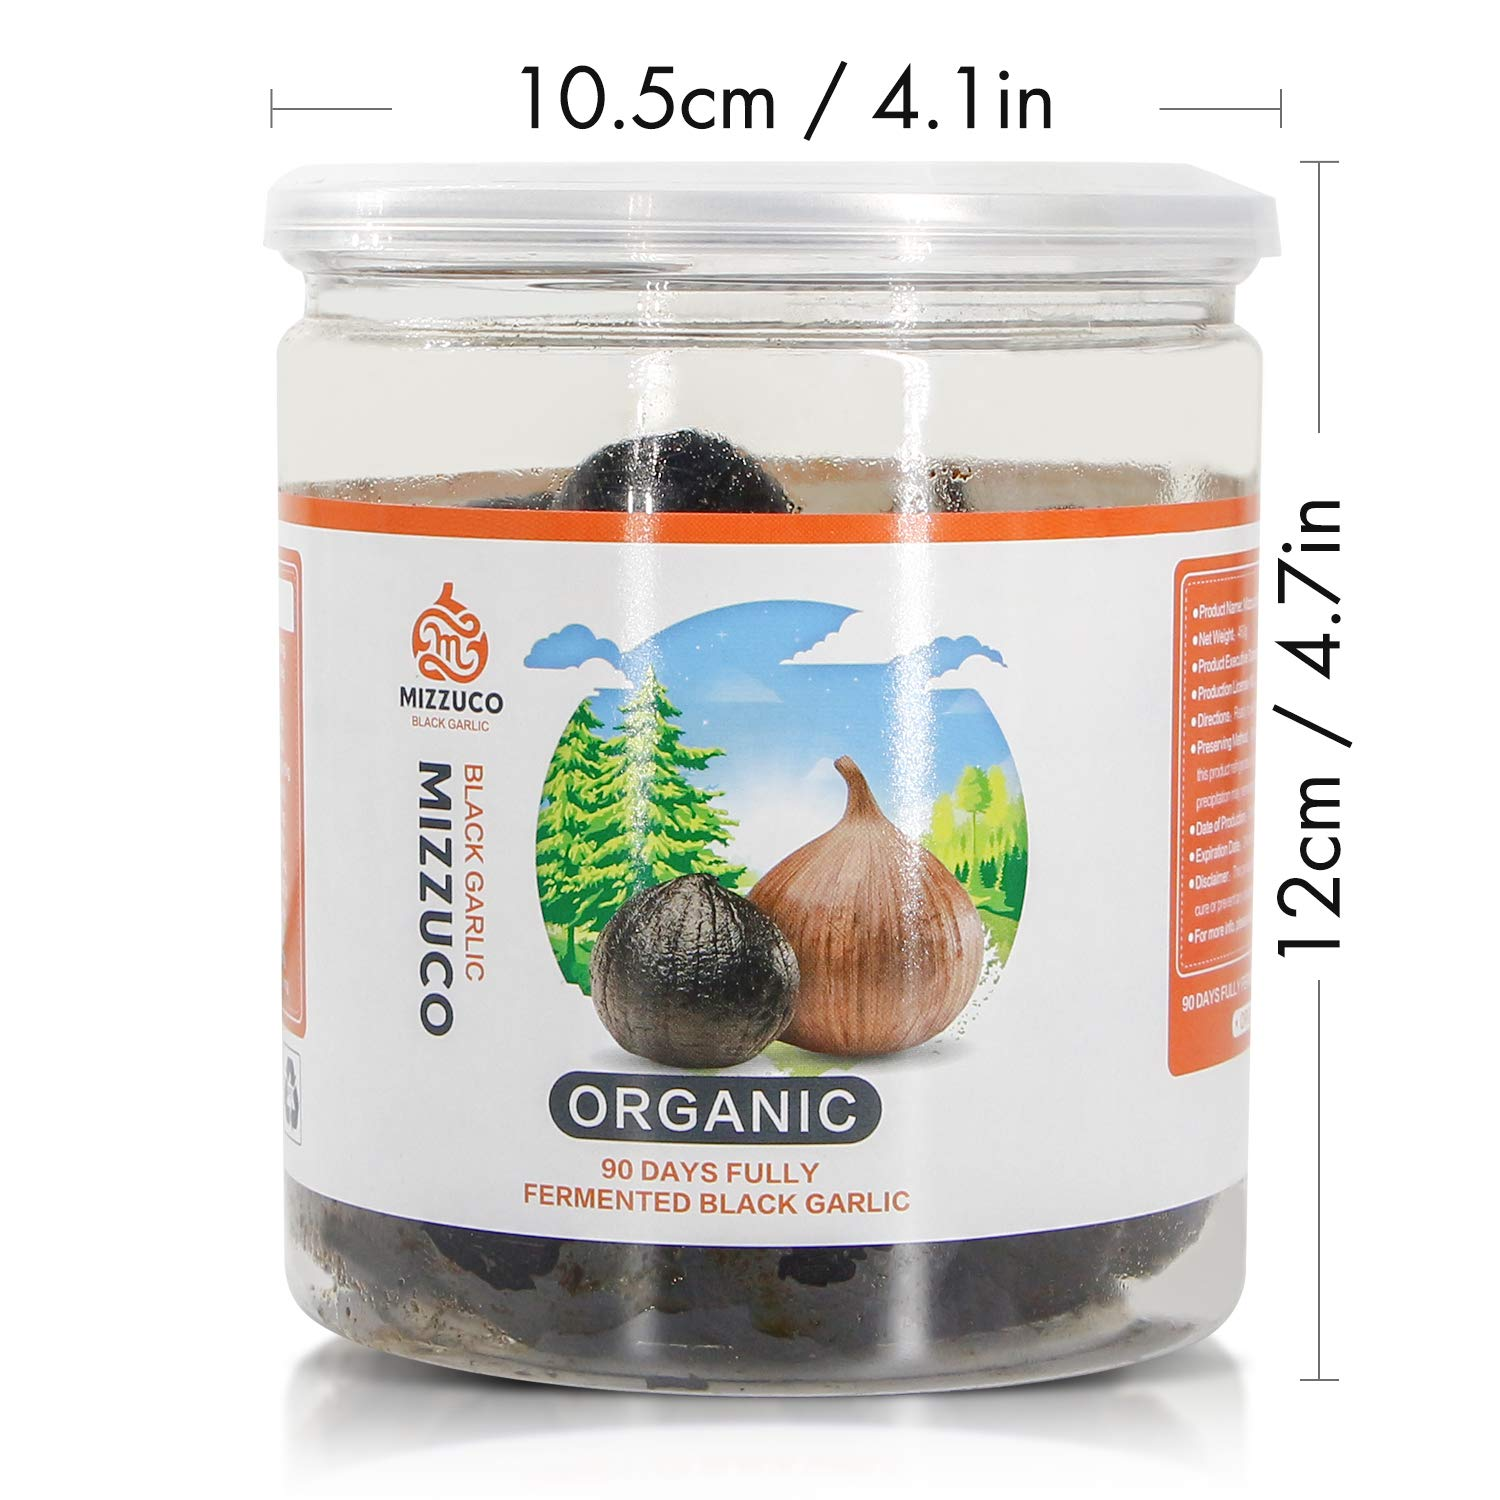 Mizzuco Black Garlic,460G Organic WHOLE Black Garlic Natural Fermented for 90 days Healthy Snack Ready to Eat or Sauce